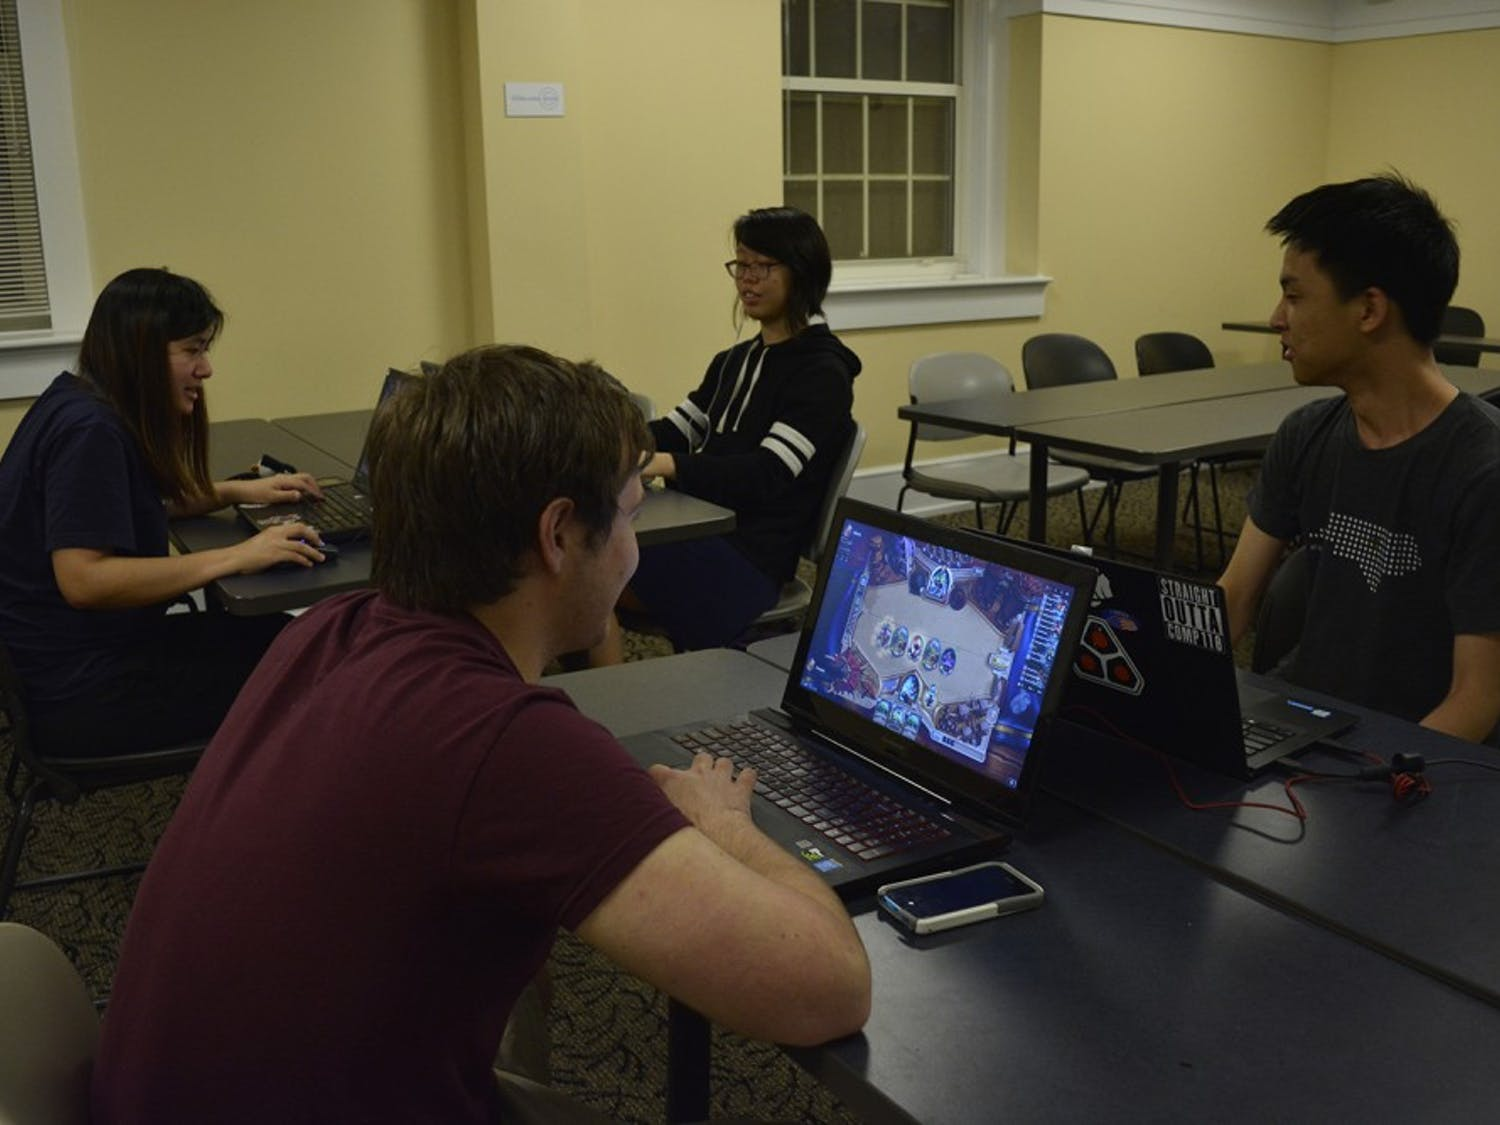 (From left) Joey Chau, Joe Plever (red shirt), Anne Chao (back right), and Cedric Nam play PC games at a UNC eSports meet up.